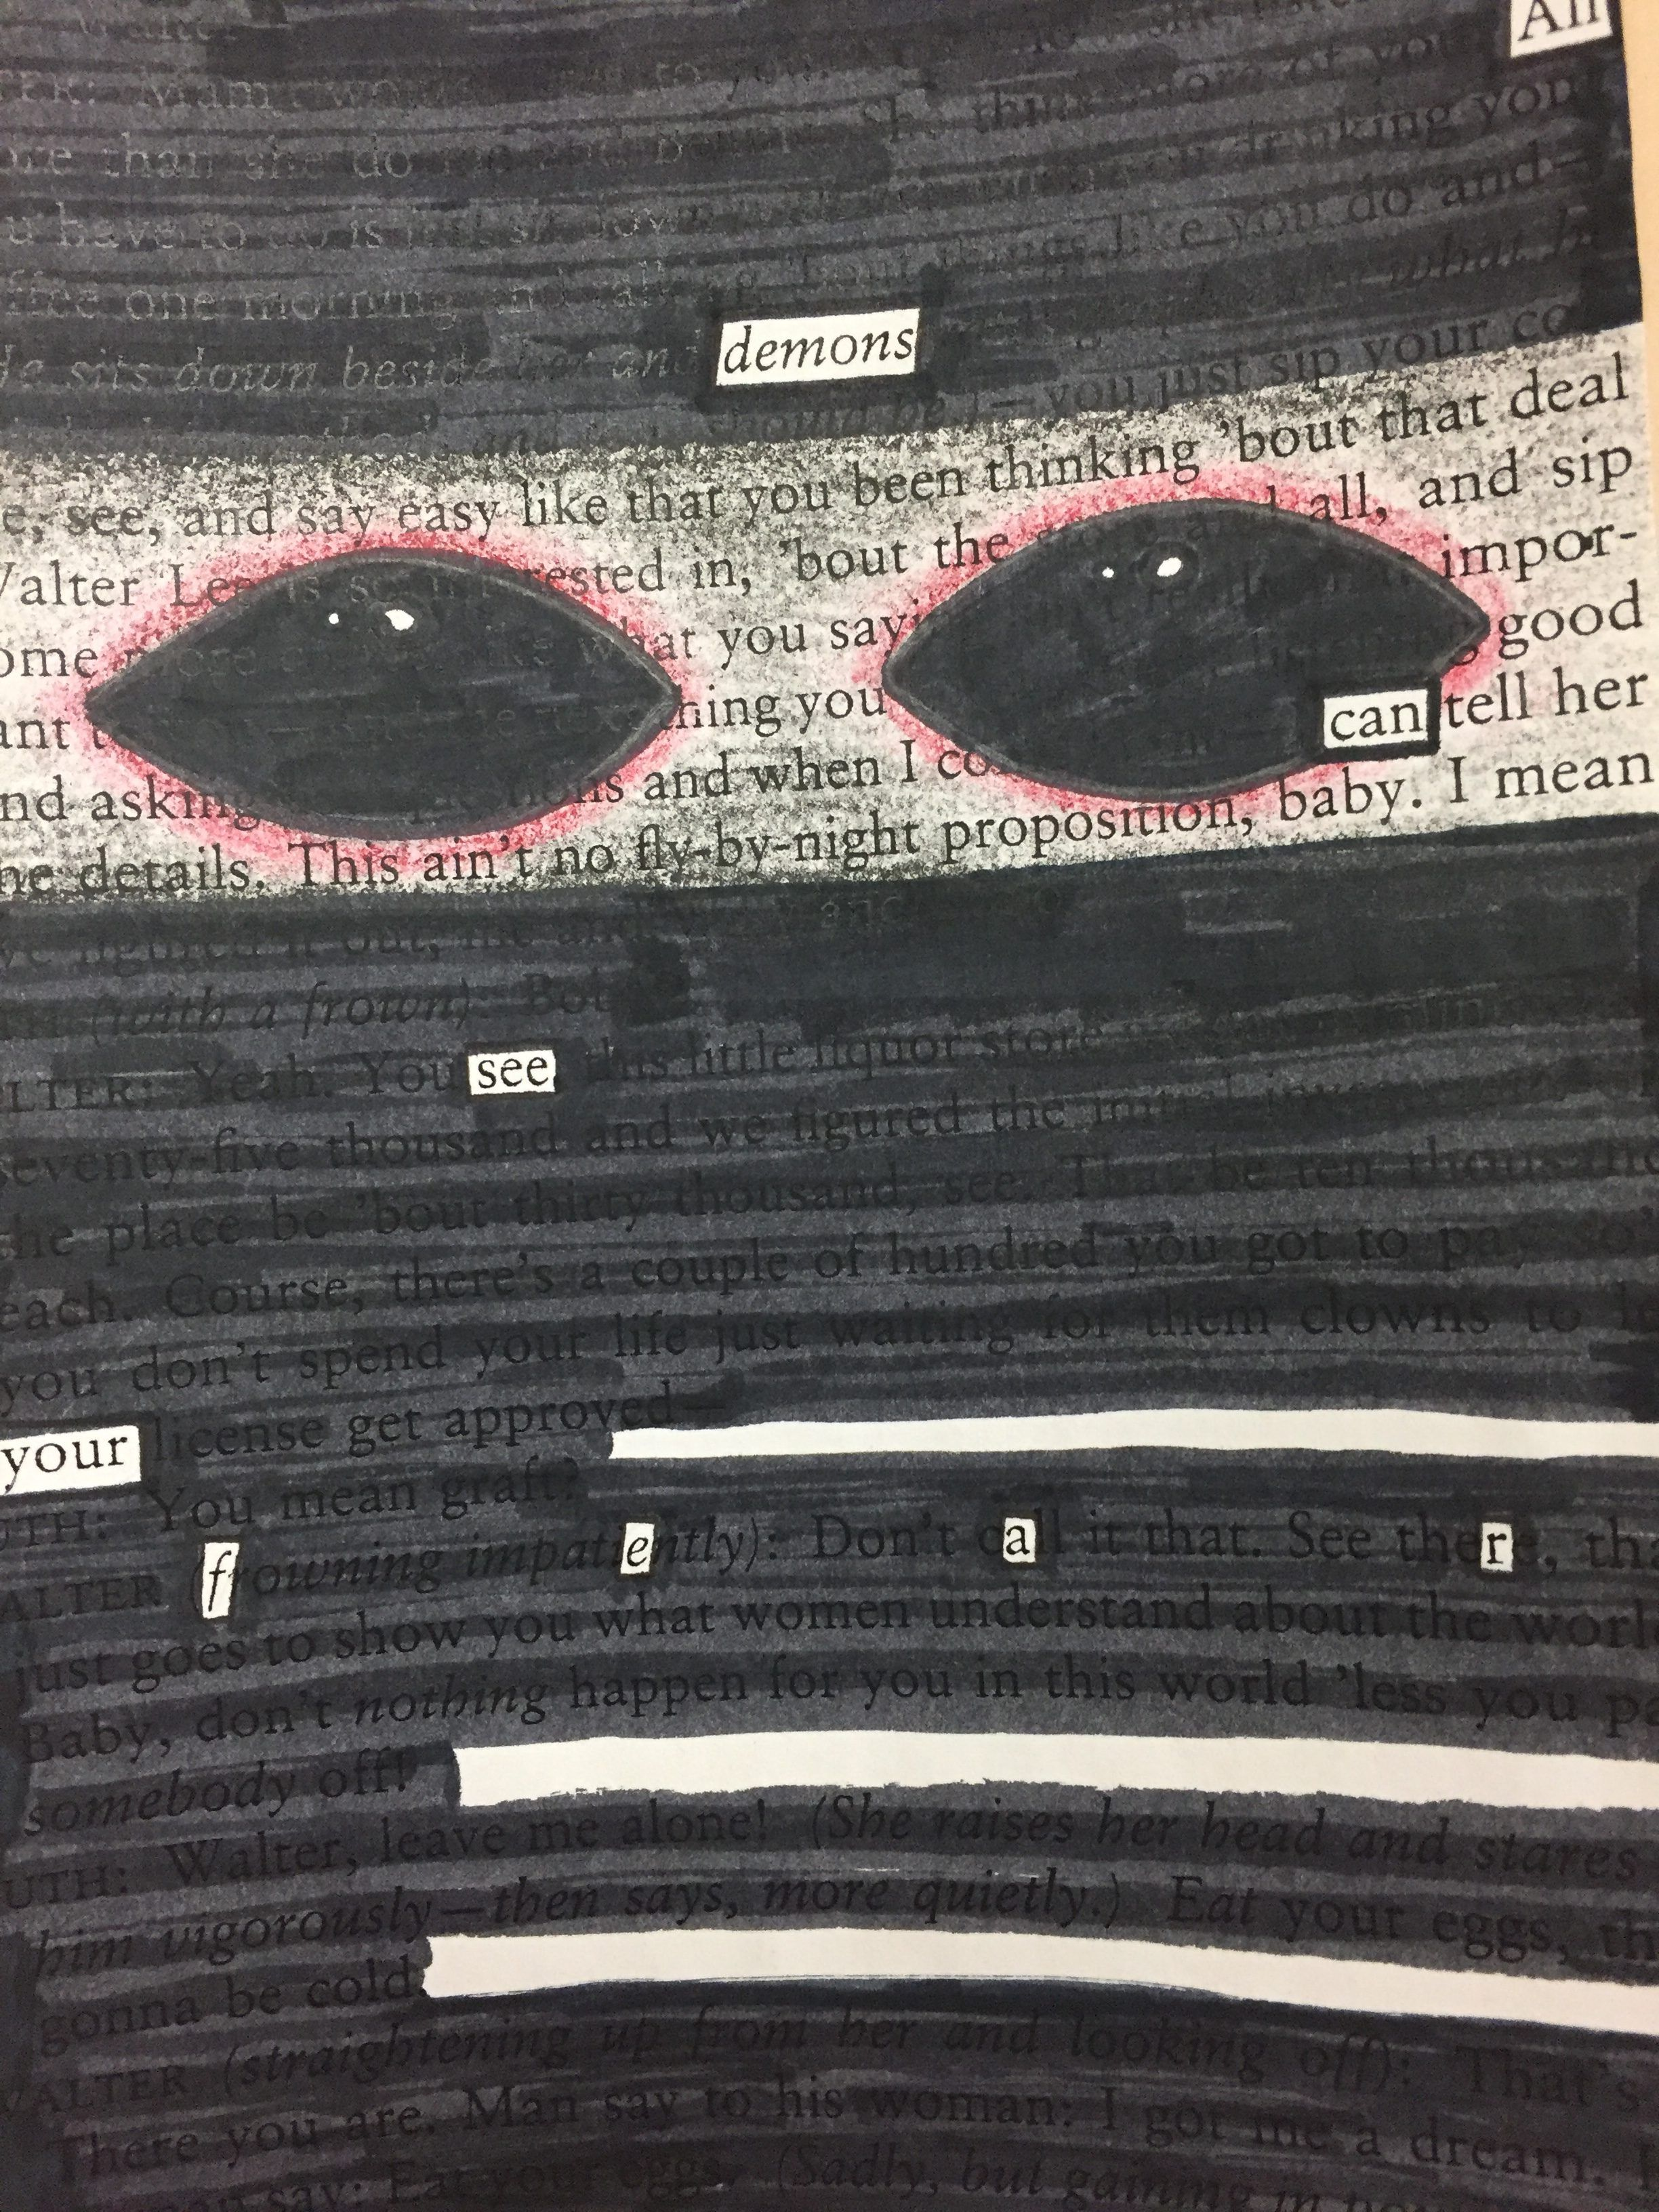 Using Blackout Poetry to Discover Thematic Subjects ...